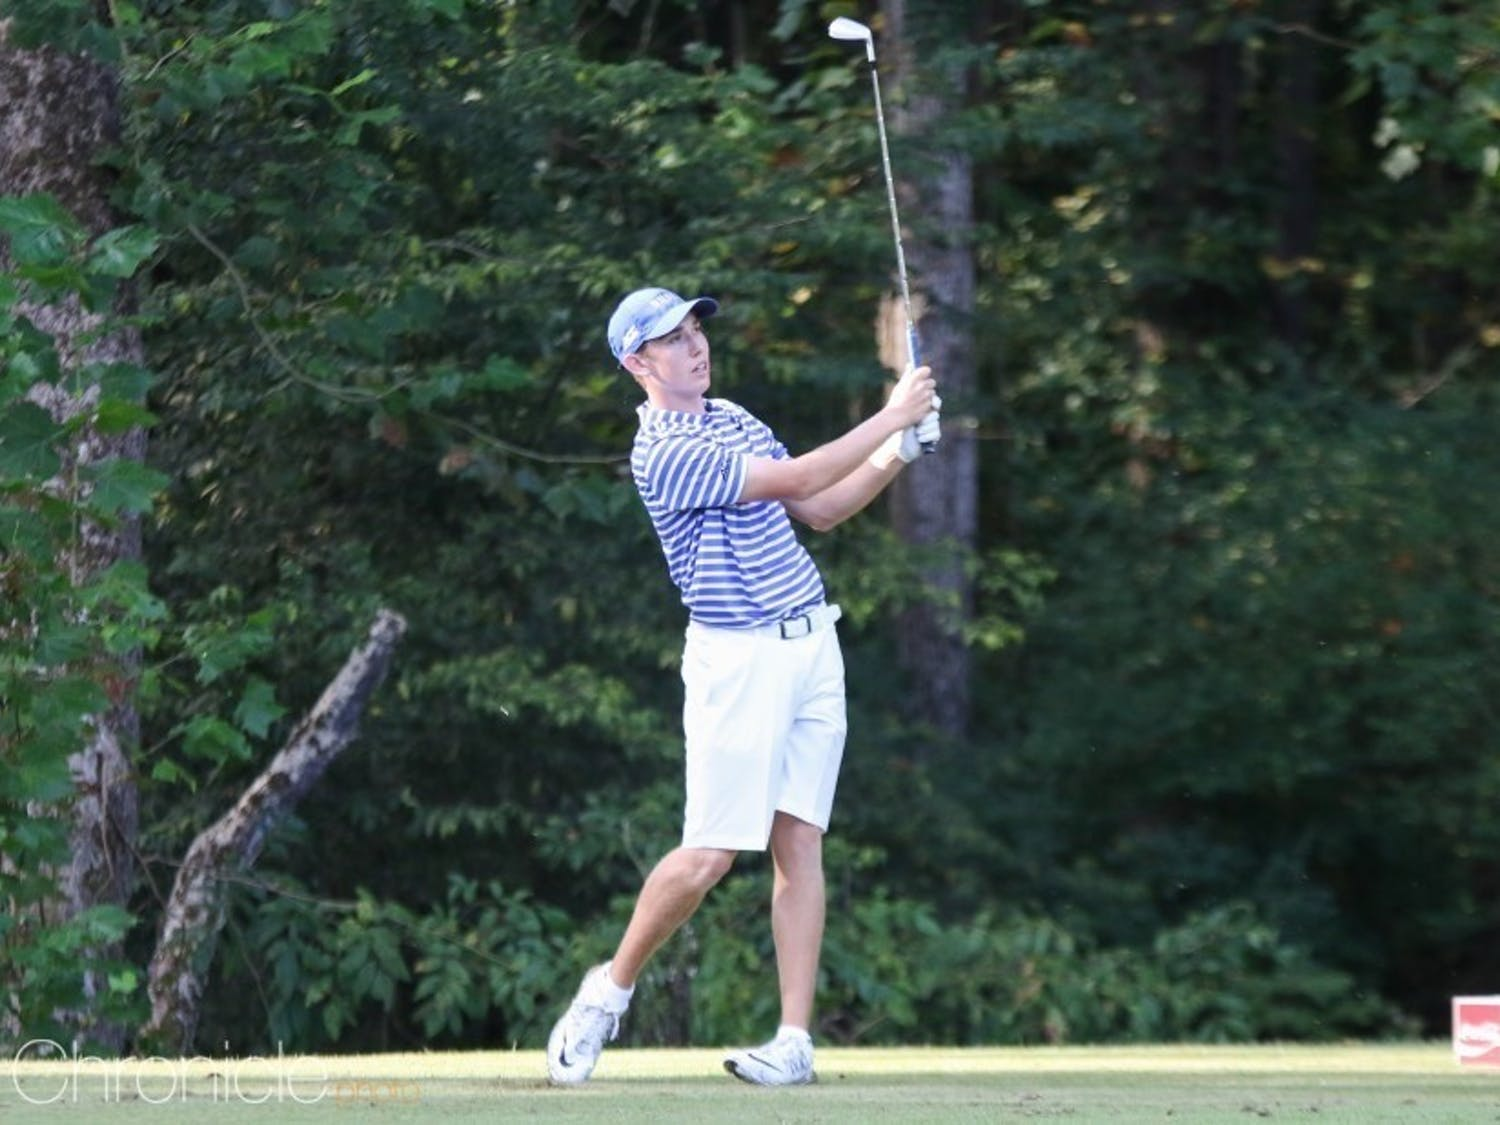 Evan Katz finished last season as the 11th-ranked golfer in the country.